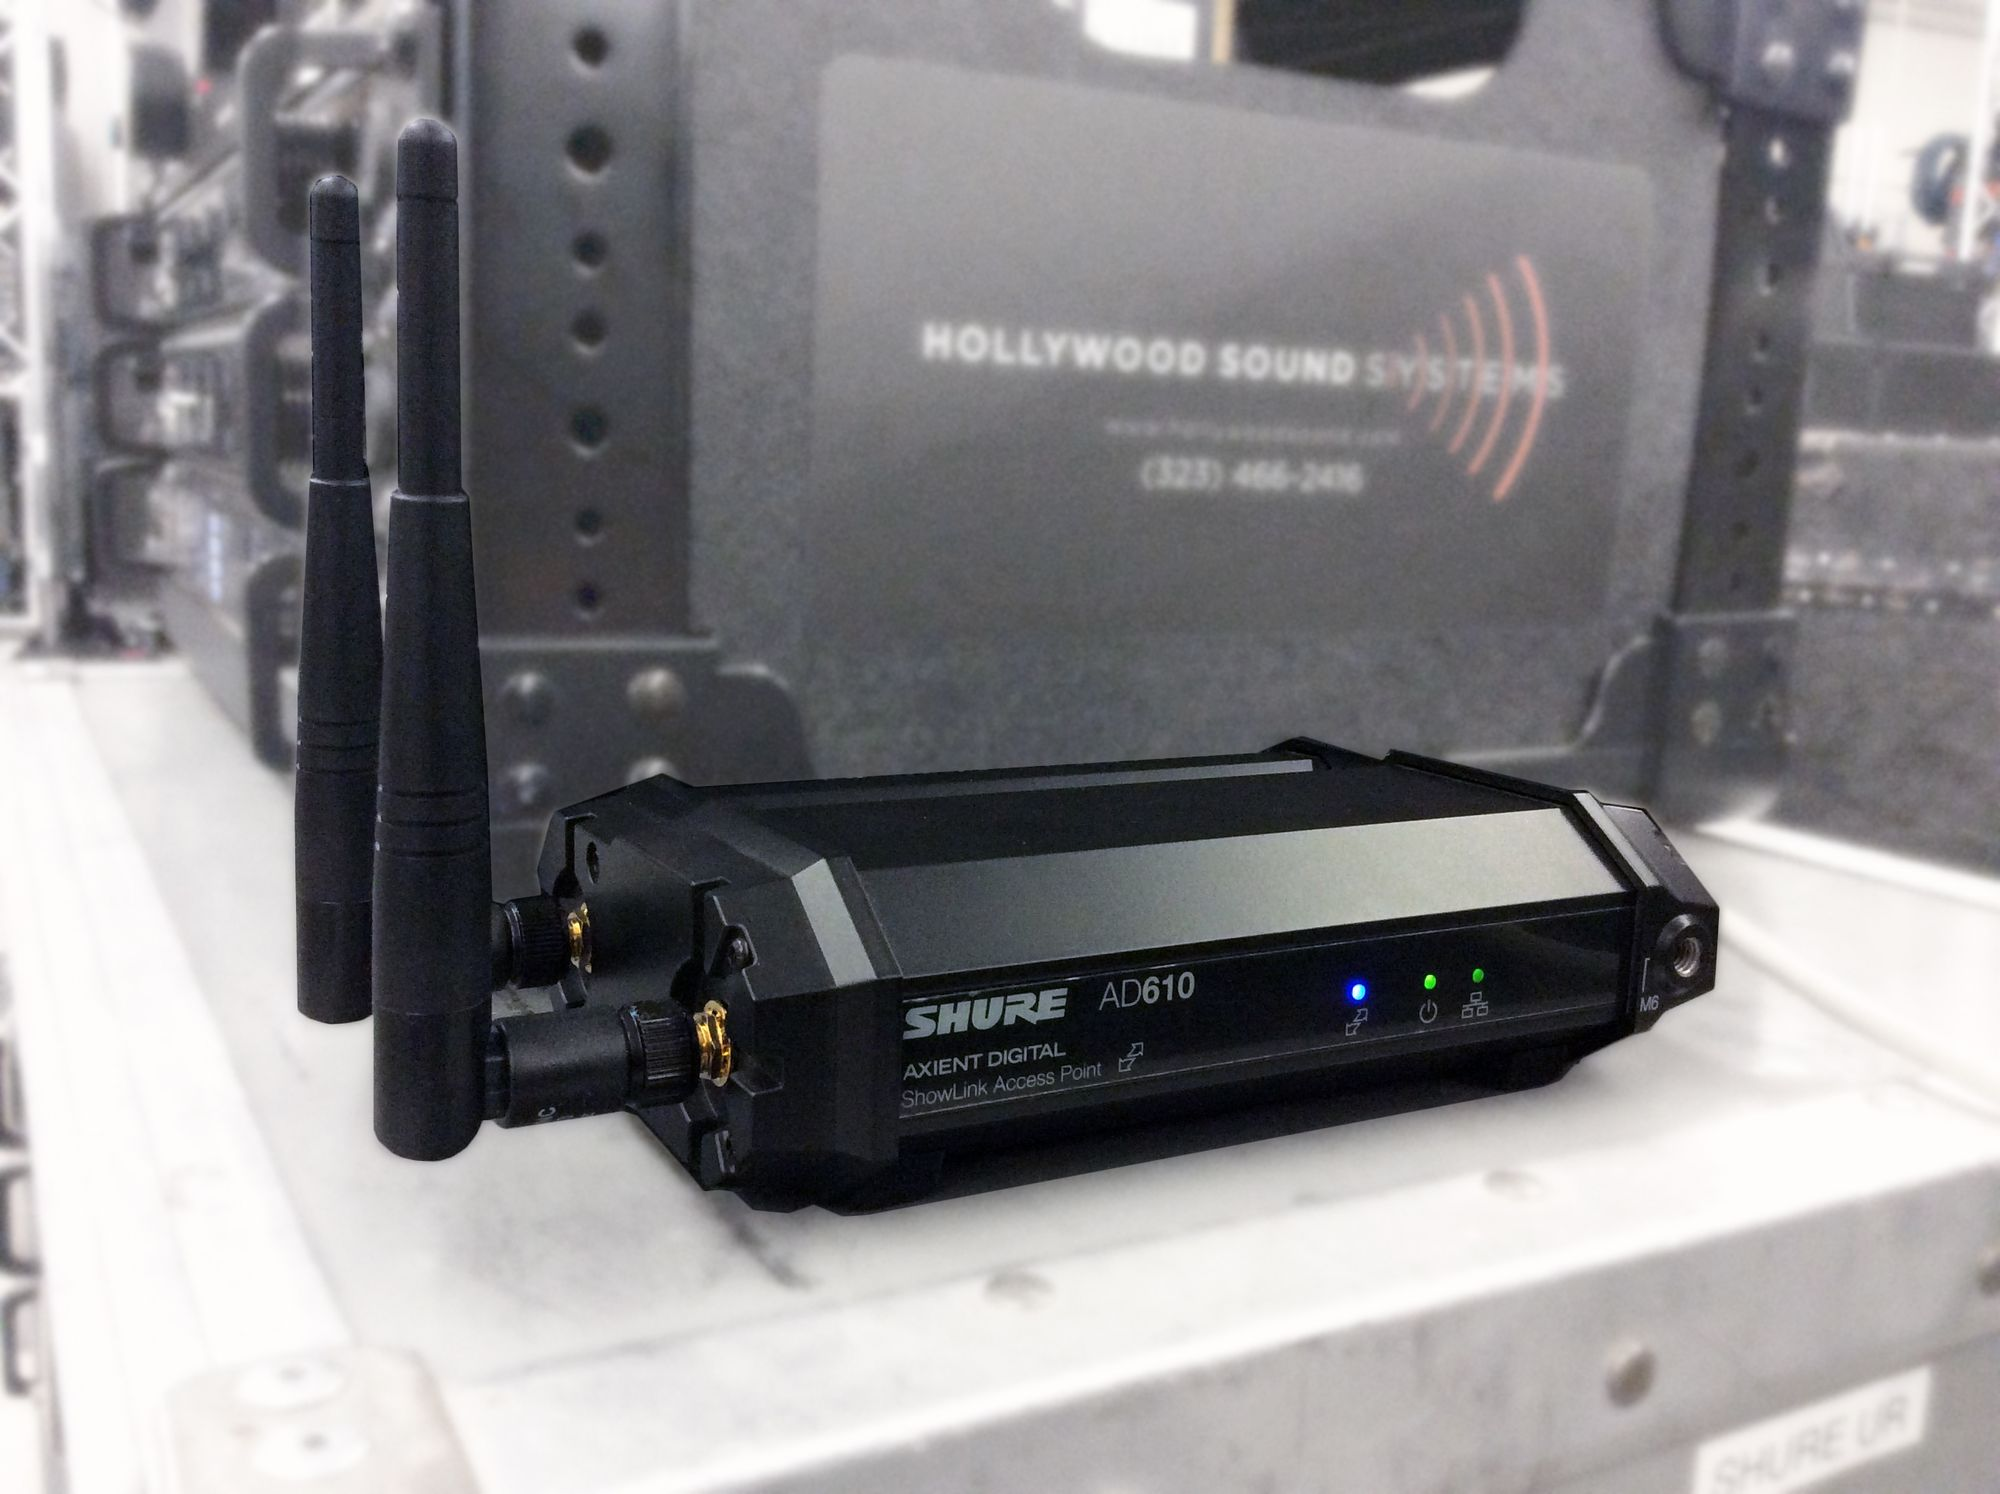 AD610 Diversity ShowLink® Access Point at Hollywood Sound Systems